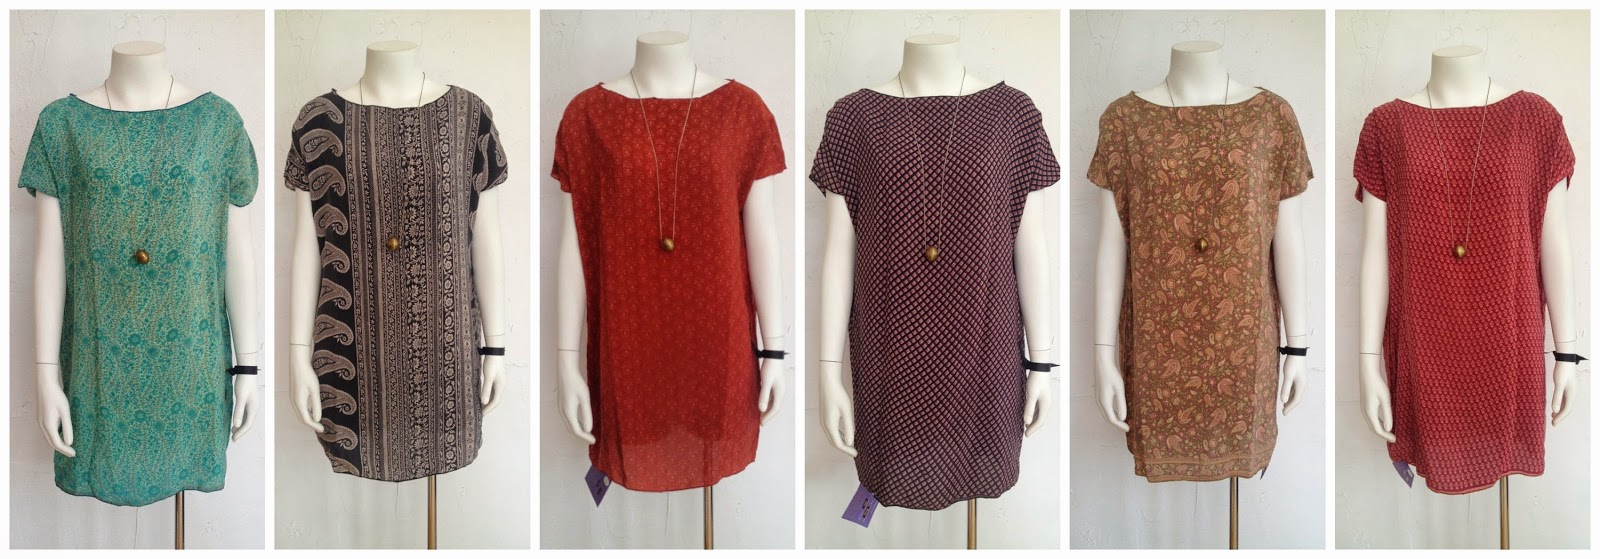 New Kaia Tunic/Dress by Indie Ella ($64) and necklace by MIN (in store only) at Folly